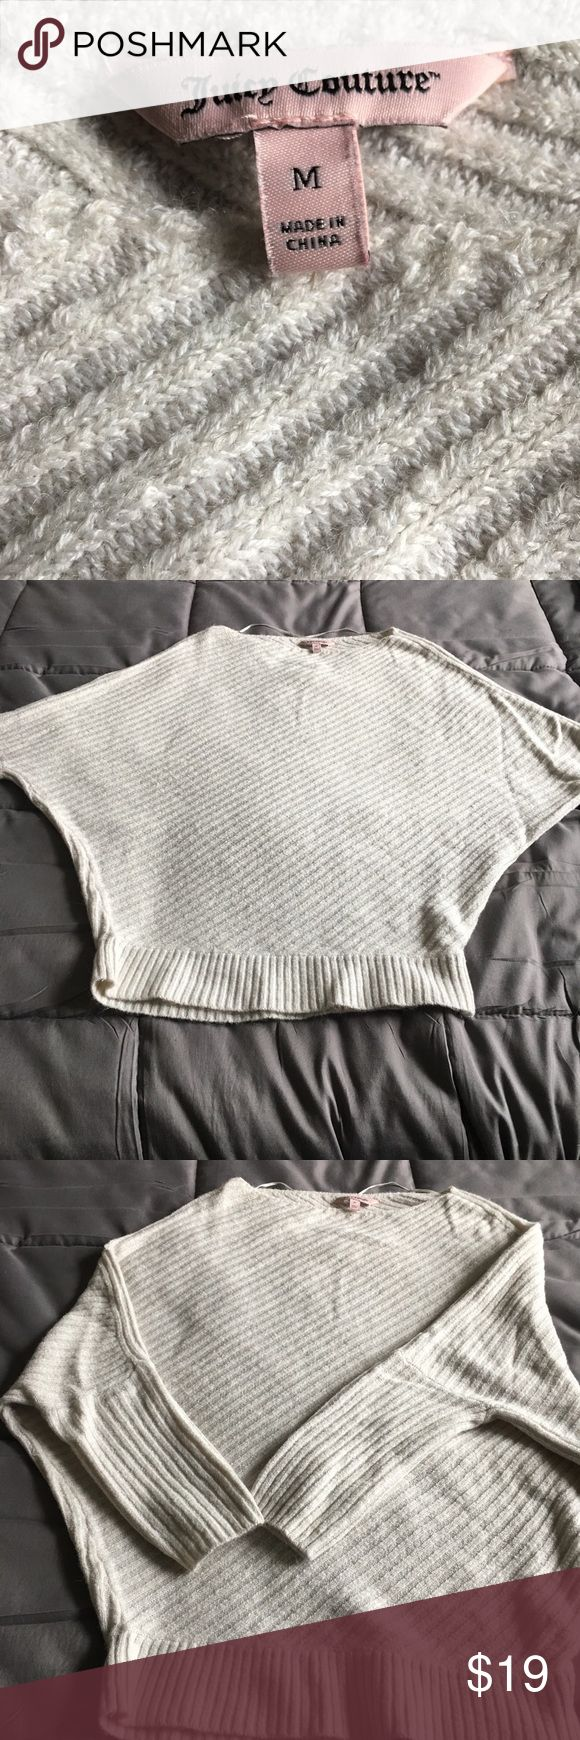 Batwing sweater Juicy couture batwing cream stripe sweater. Juicy Couture Tops Blouses